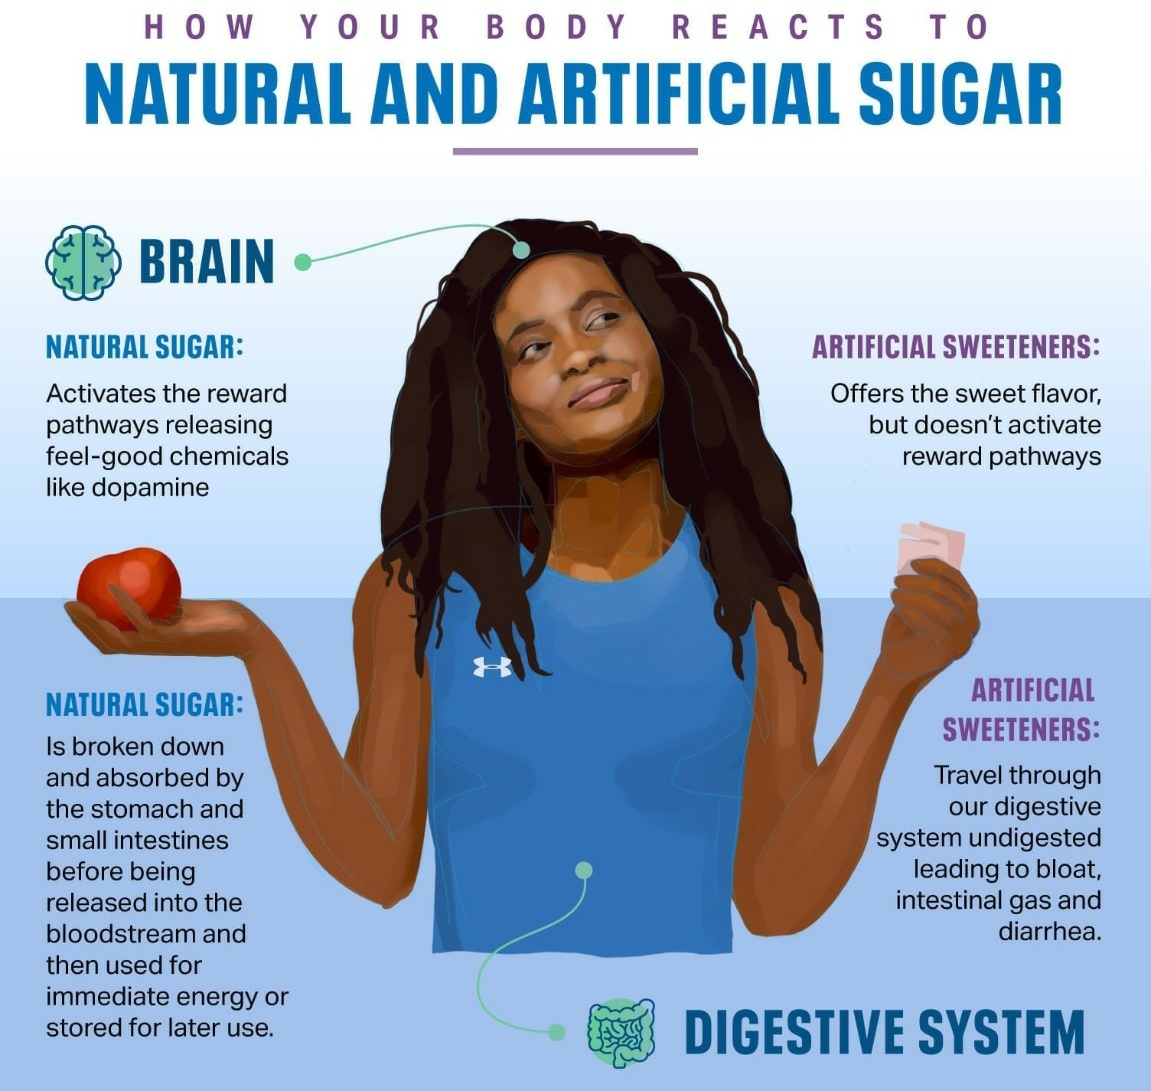 Natural Sugar vs Artificial Sweeteners